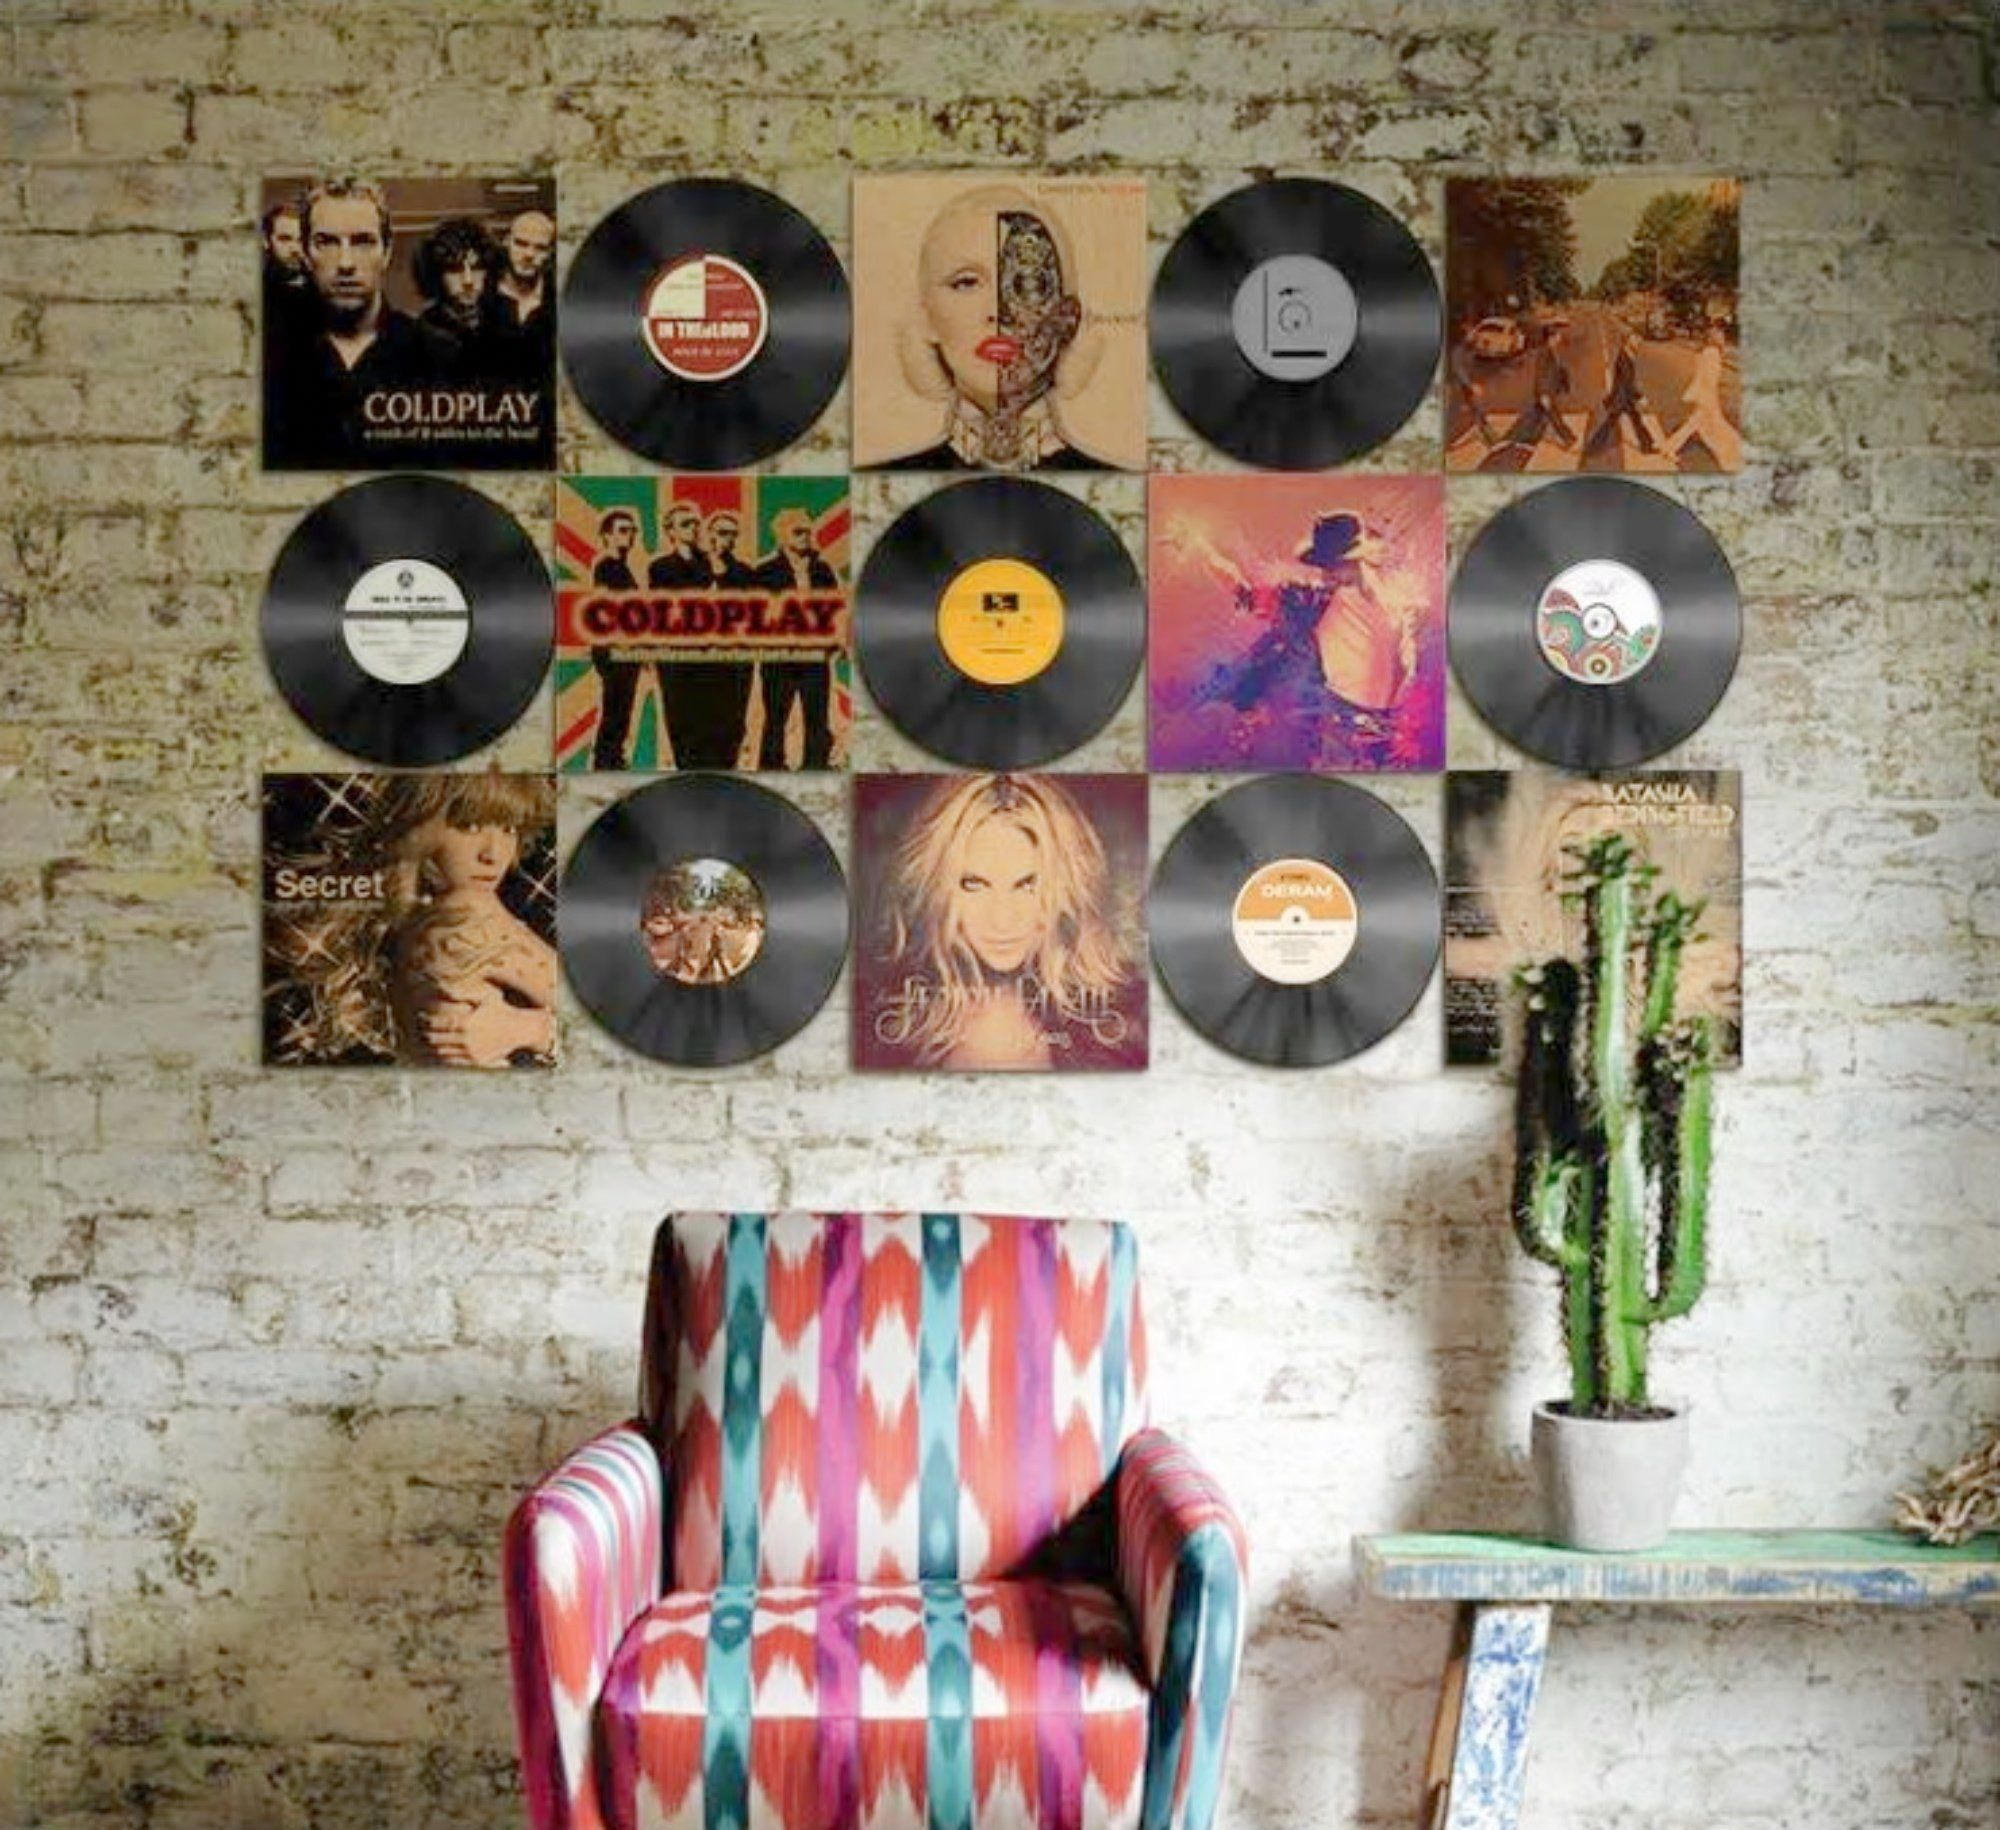 Vinyl Record And Album Cover Wall Display Vinyl Records Decor Vinyl Room Vinyl Decor